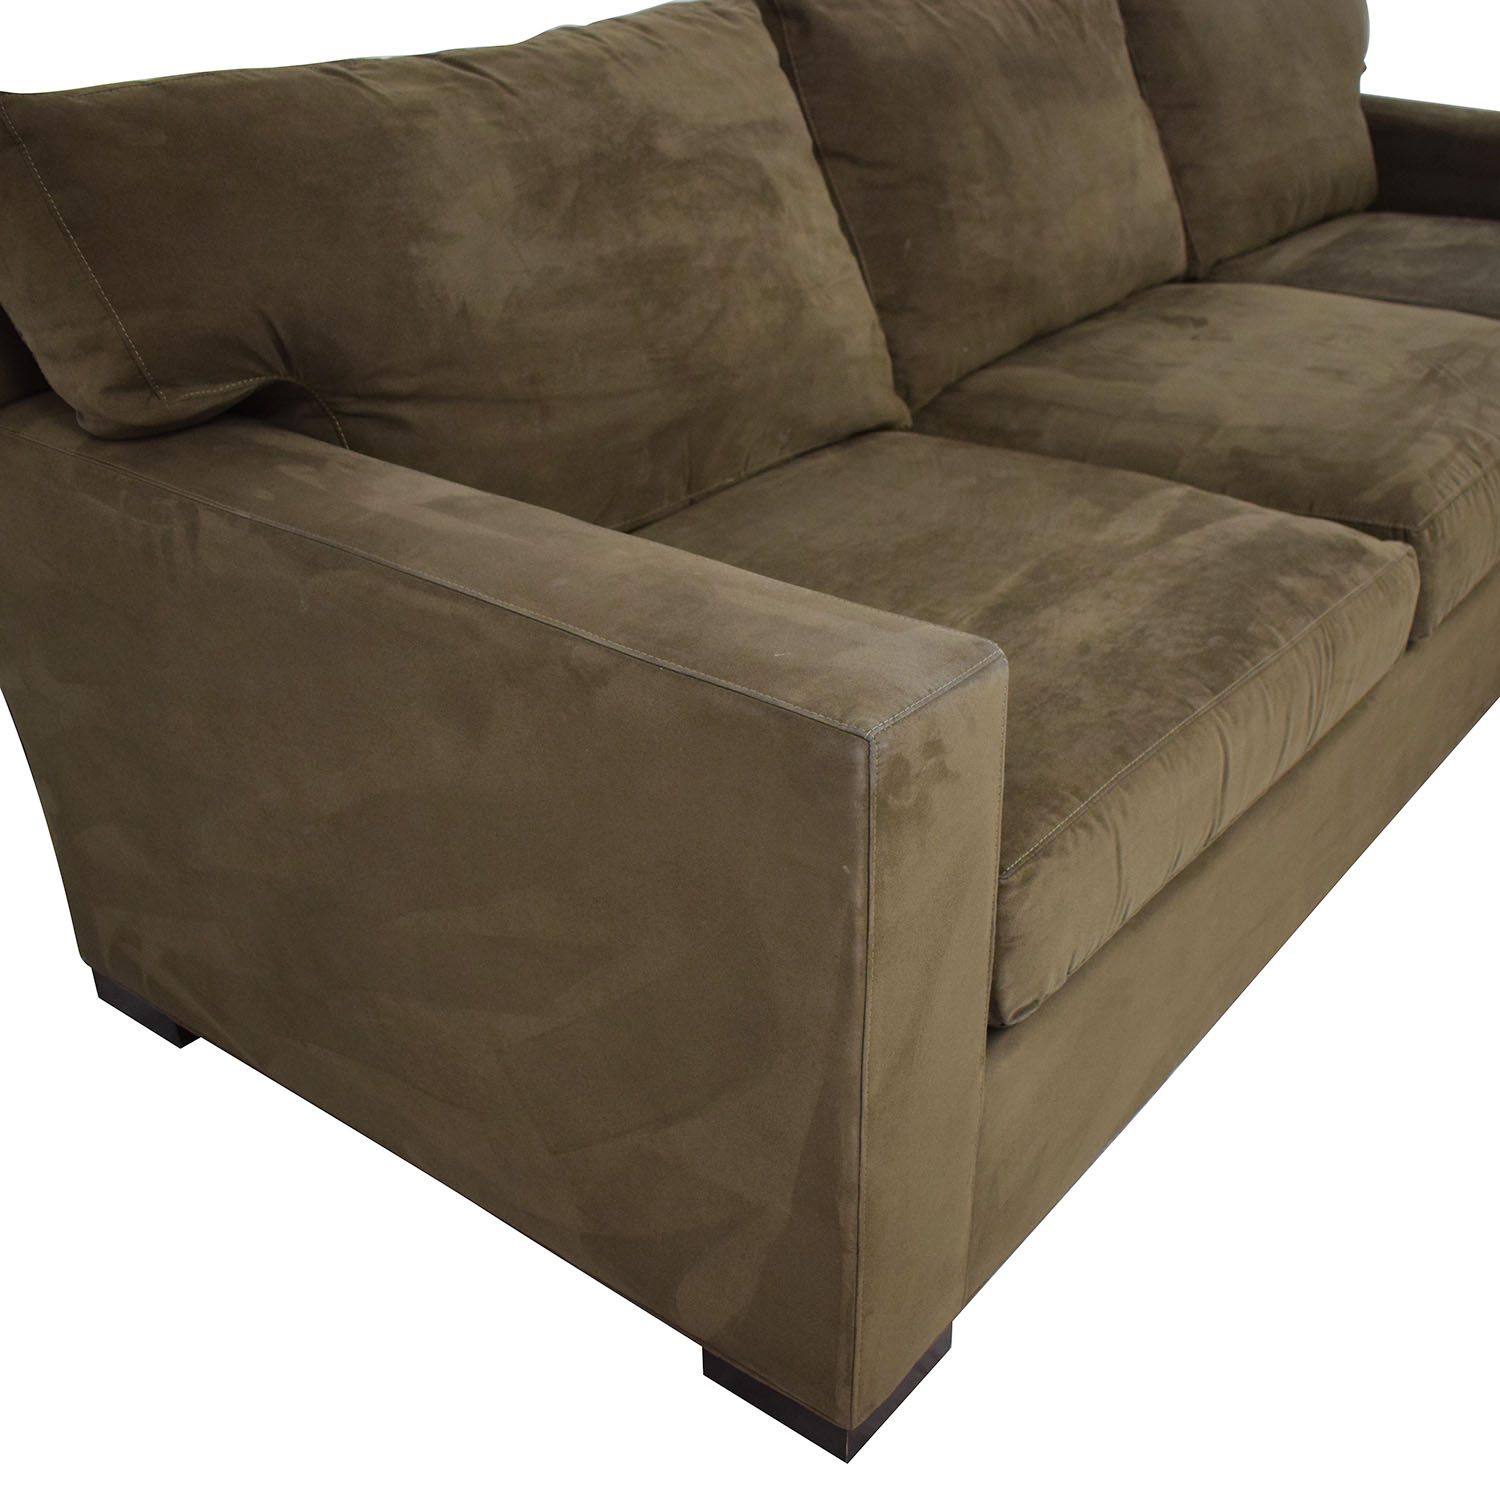 Crate & Barrel Crate & Barrel Sectional Sofa with Chaise